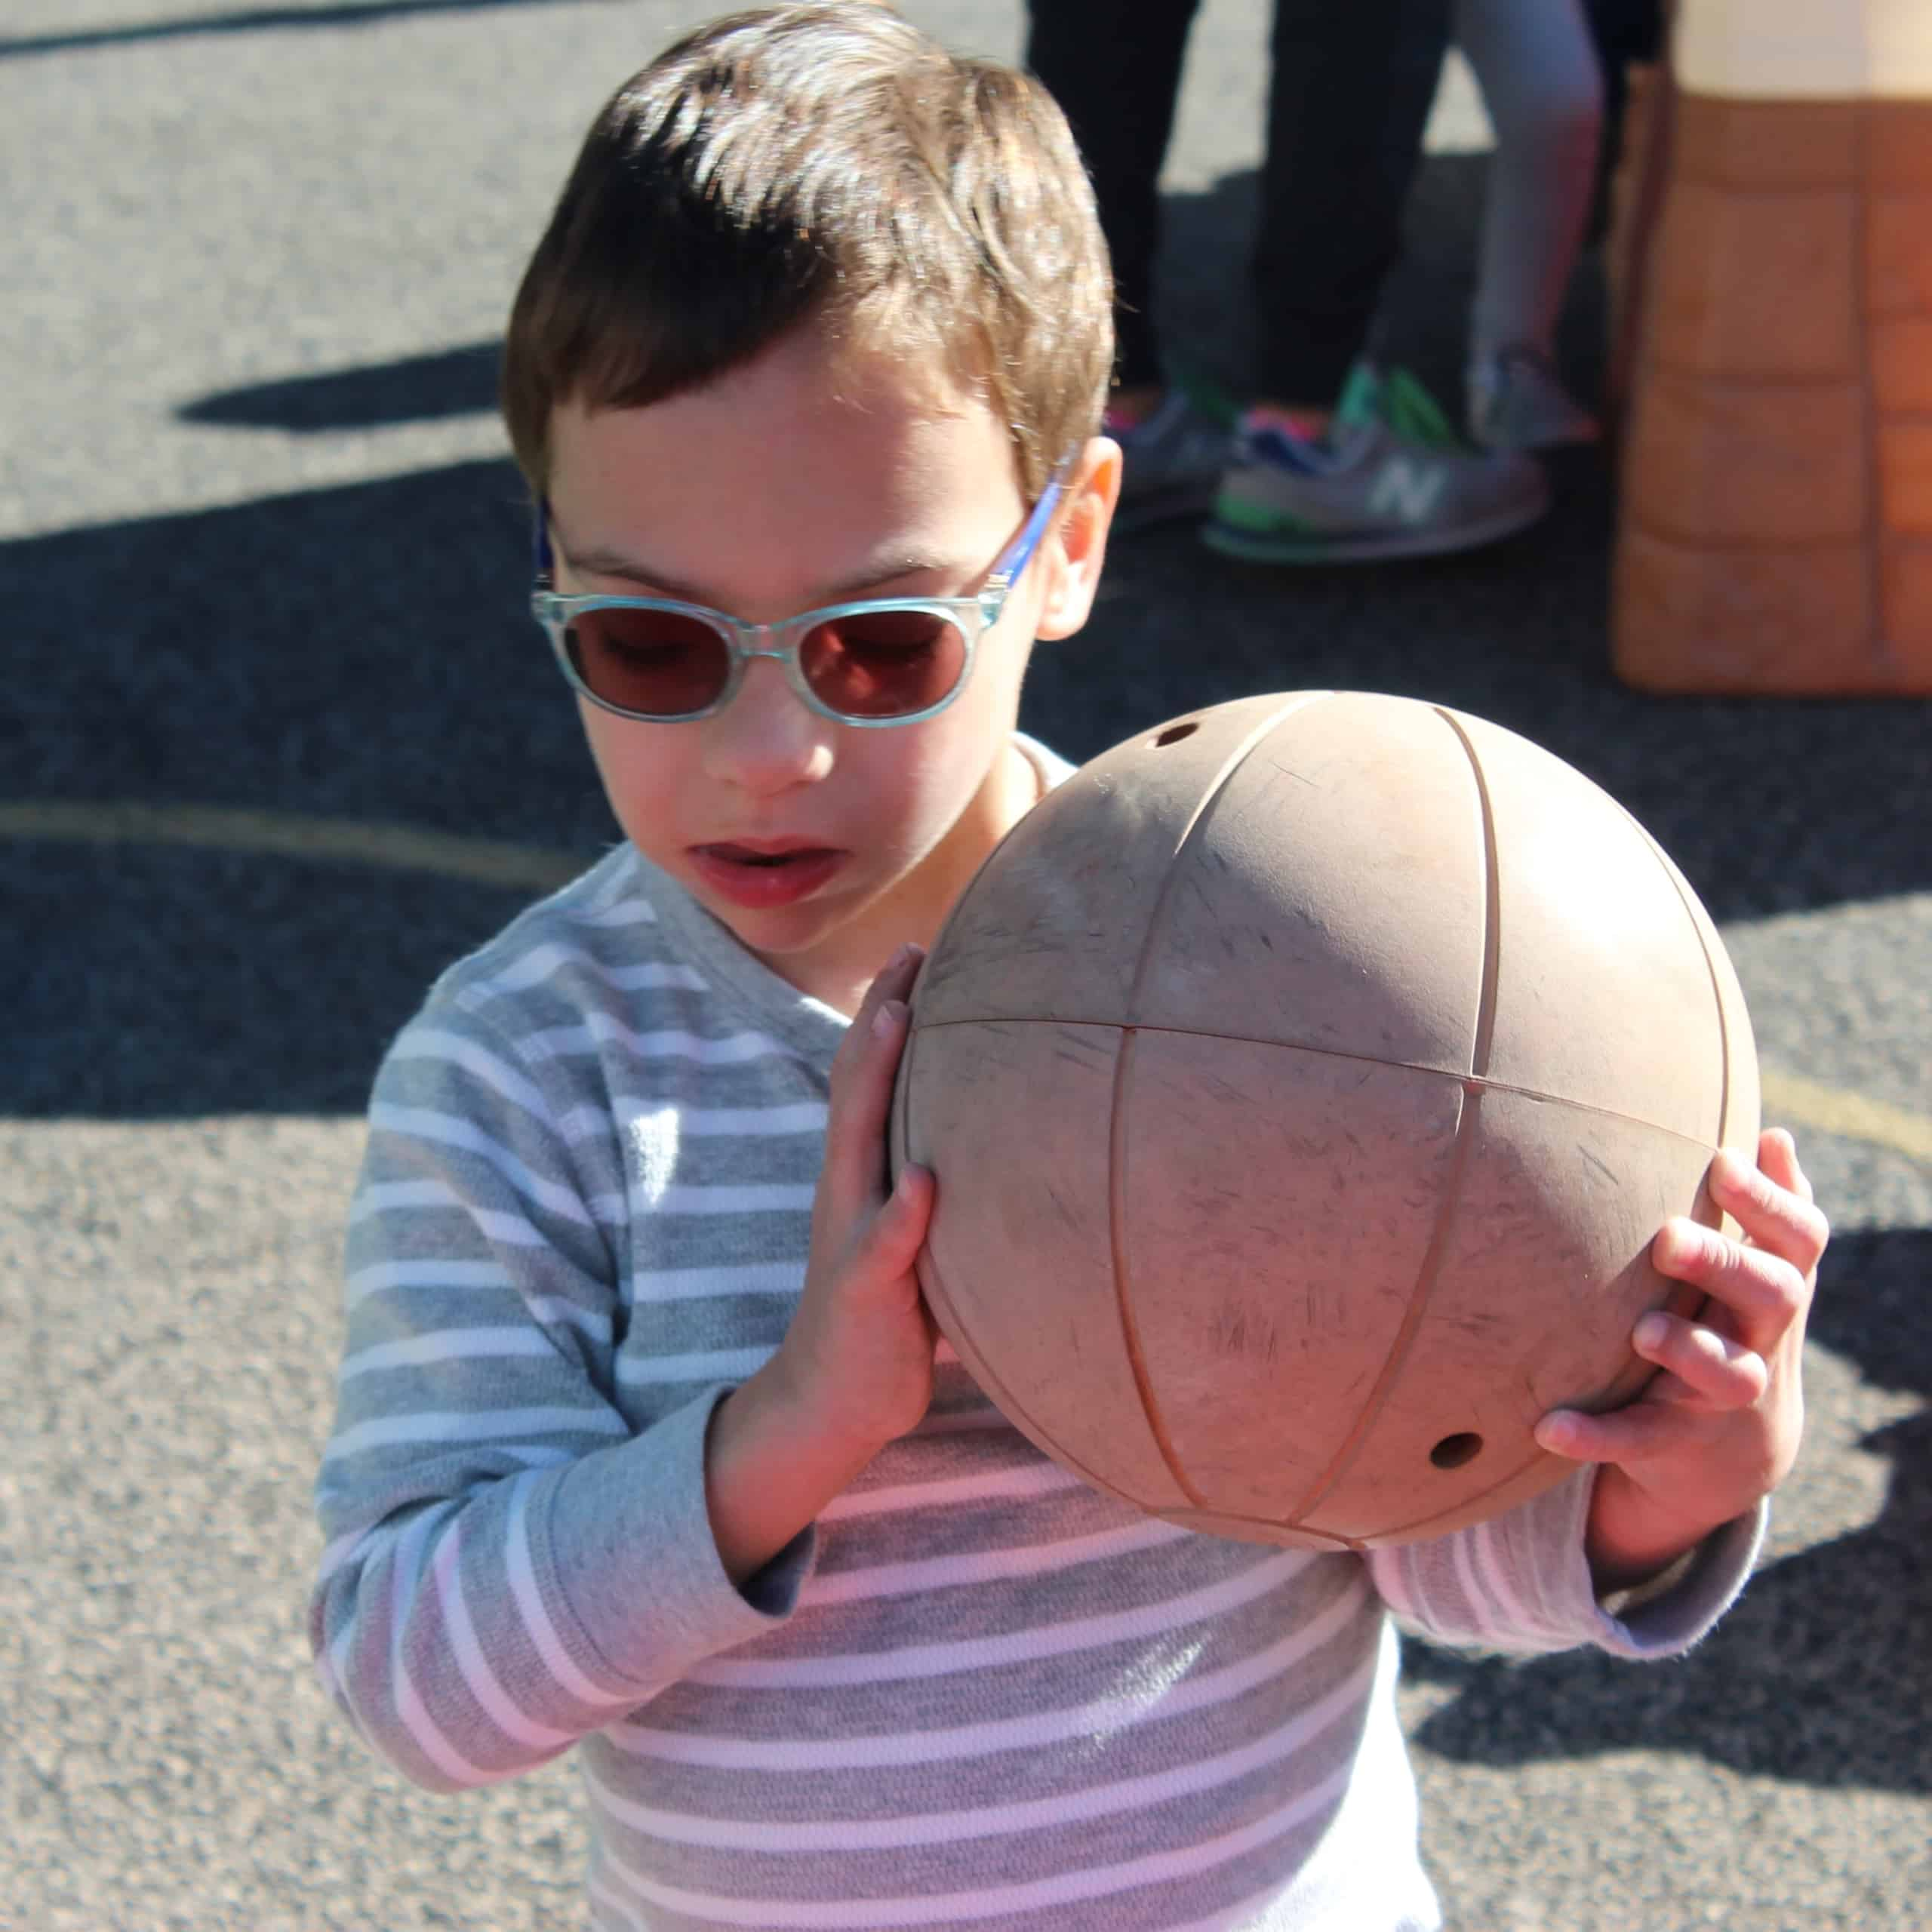 A preschool boy with glasses holds a beeping basketball close to his face